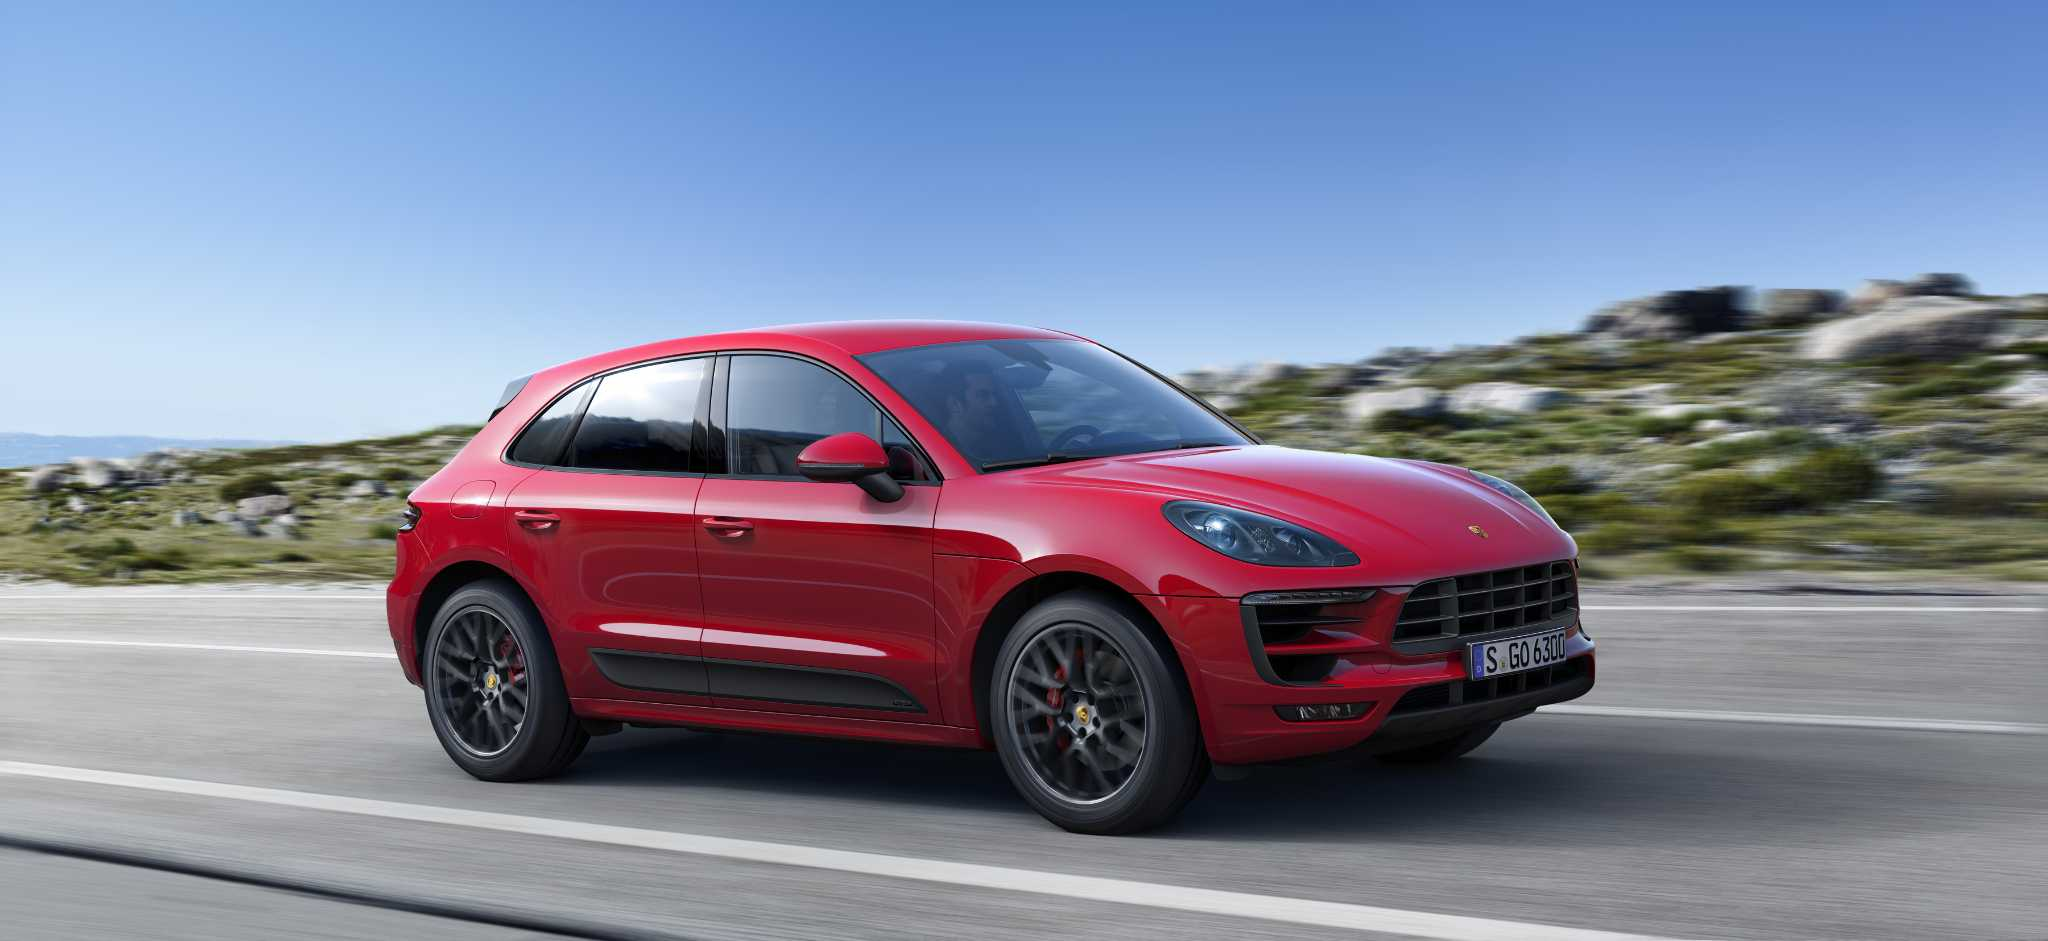 Porsche's most affordable 4-door sports car: Macan GTS